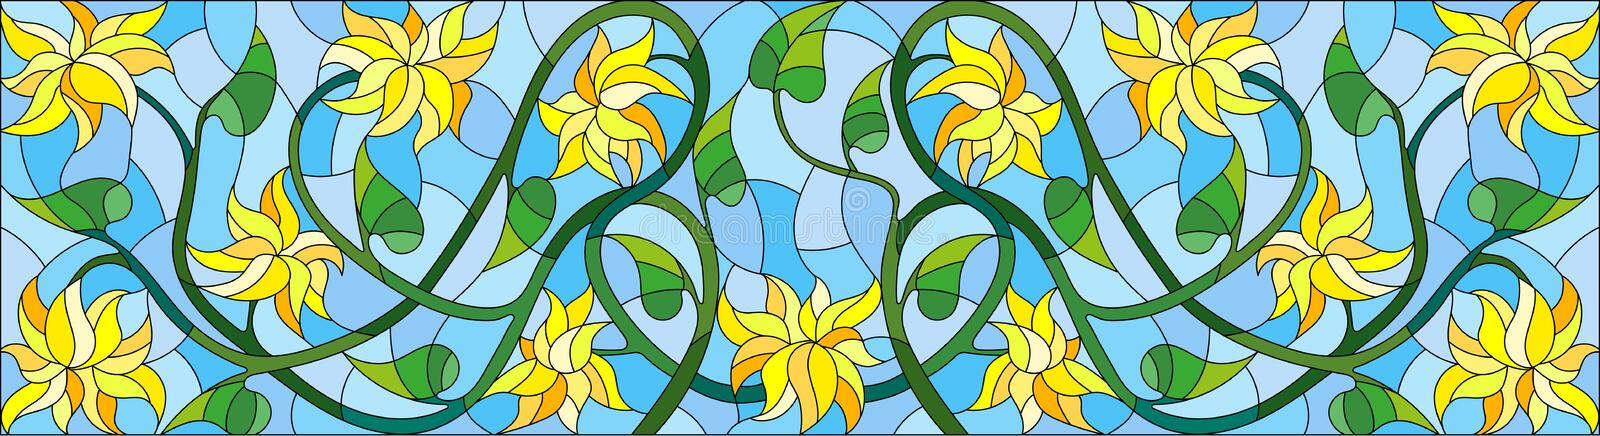 Stained glass illustration with abstract yellow flowers on a blue background,horizontal orientation royalty free illustration